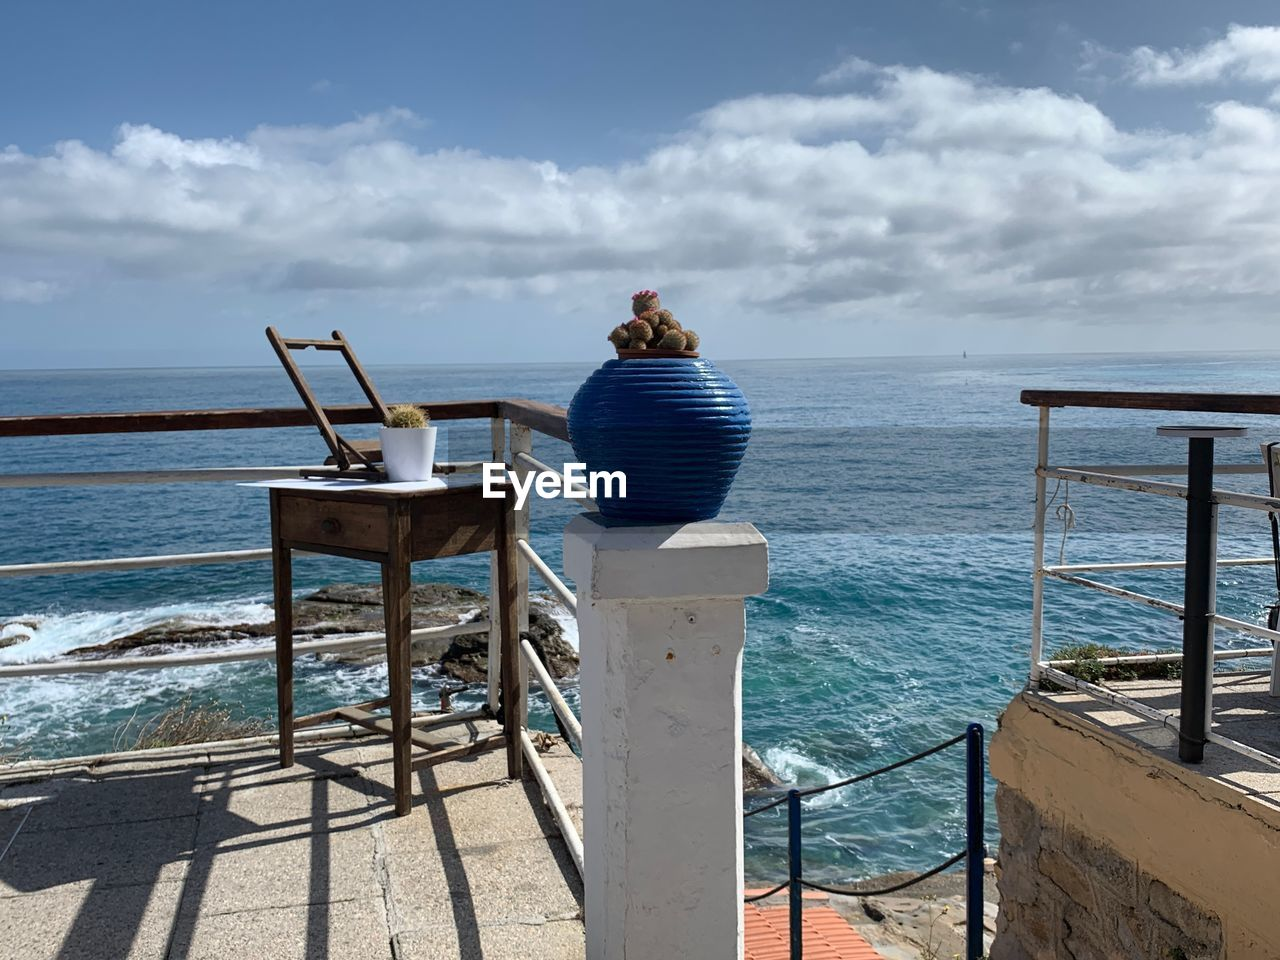 sea, sky, water, cloud - sky, beach, horizon, scenics - nature, horizon over water, nature, beauty in nature, land, seat, tranquil scene, railing, chair, tranquility, day, sunlight, outdoors